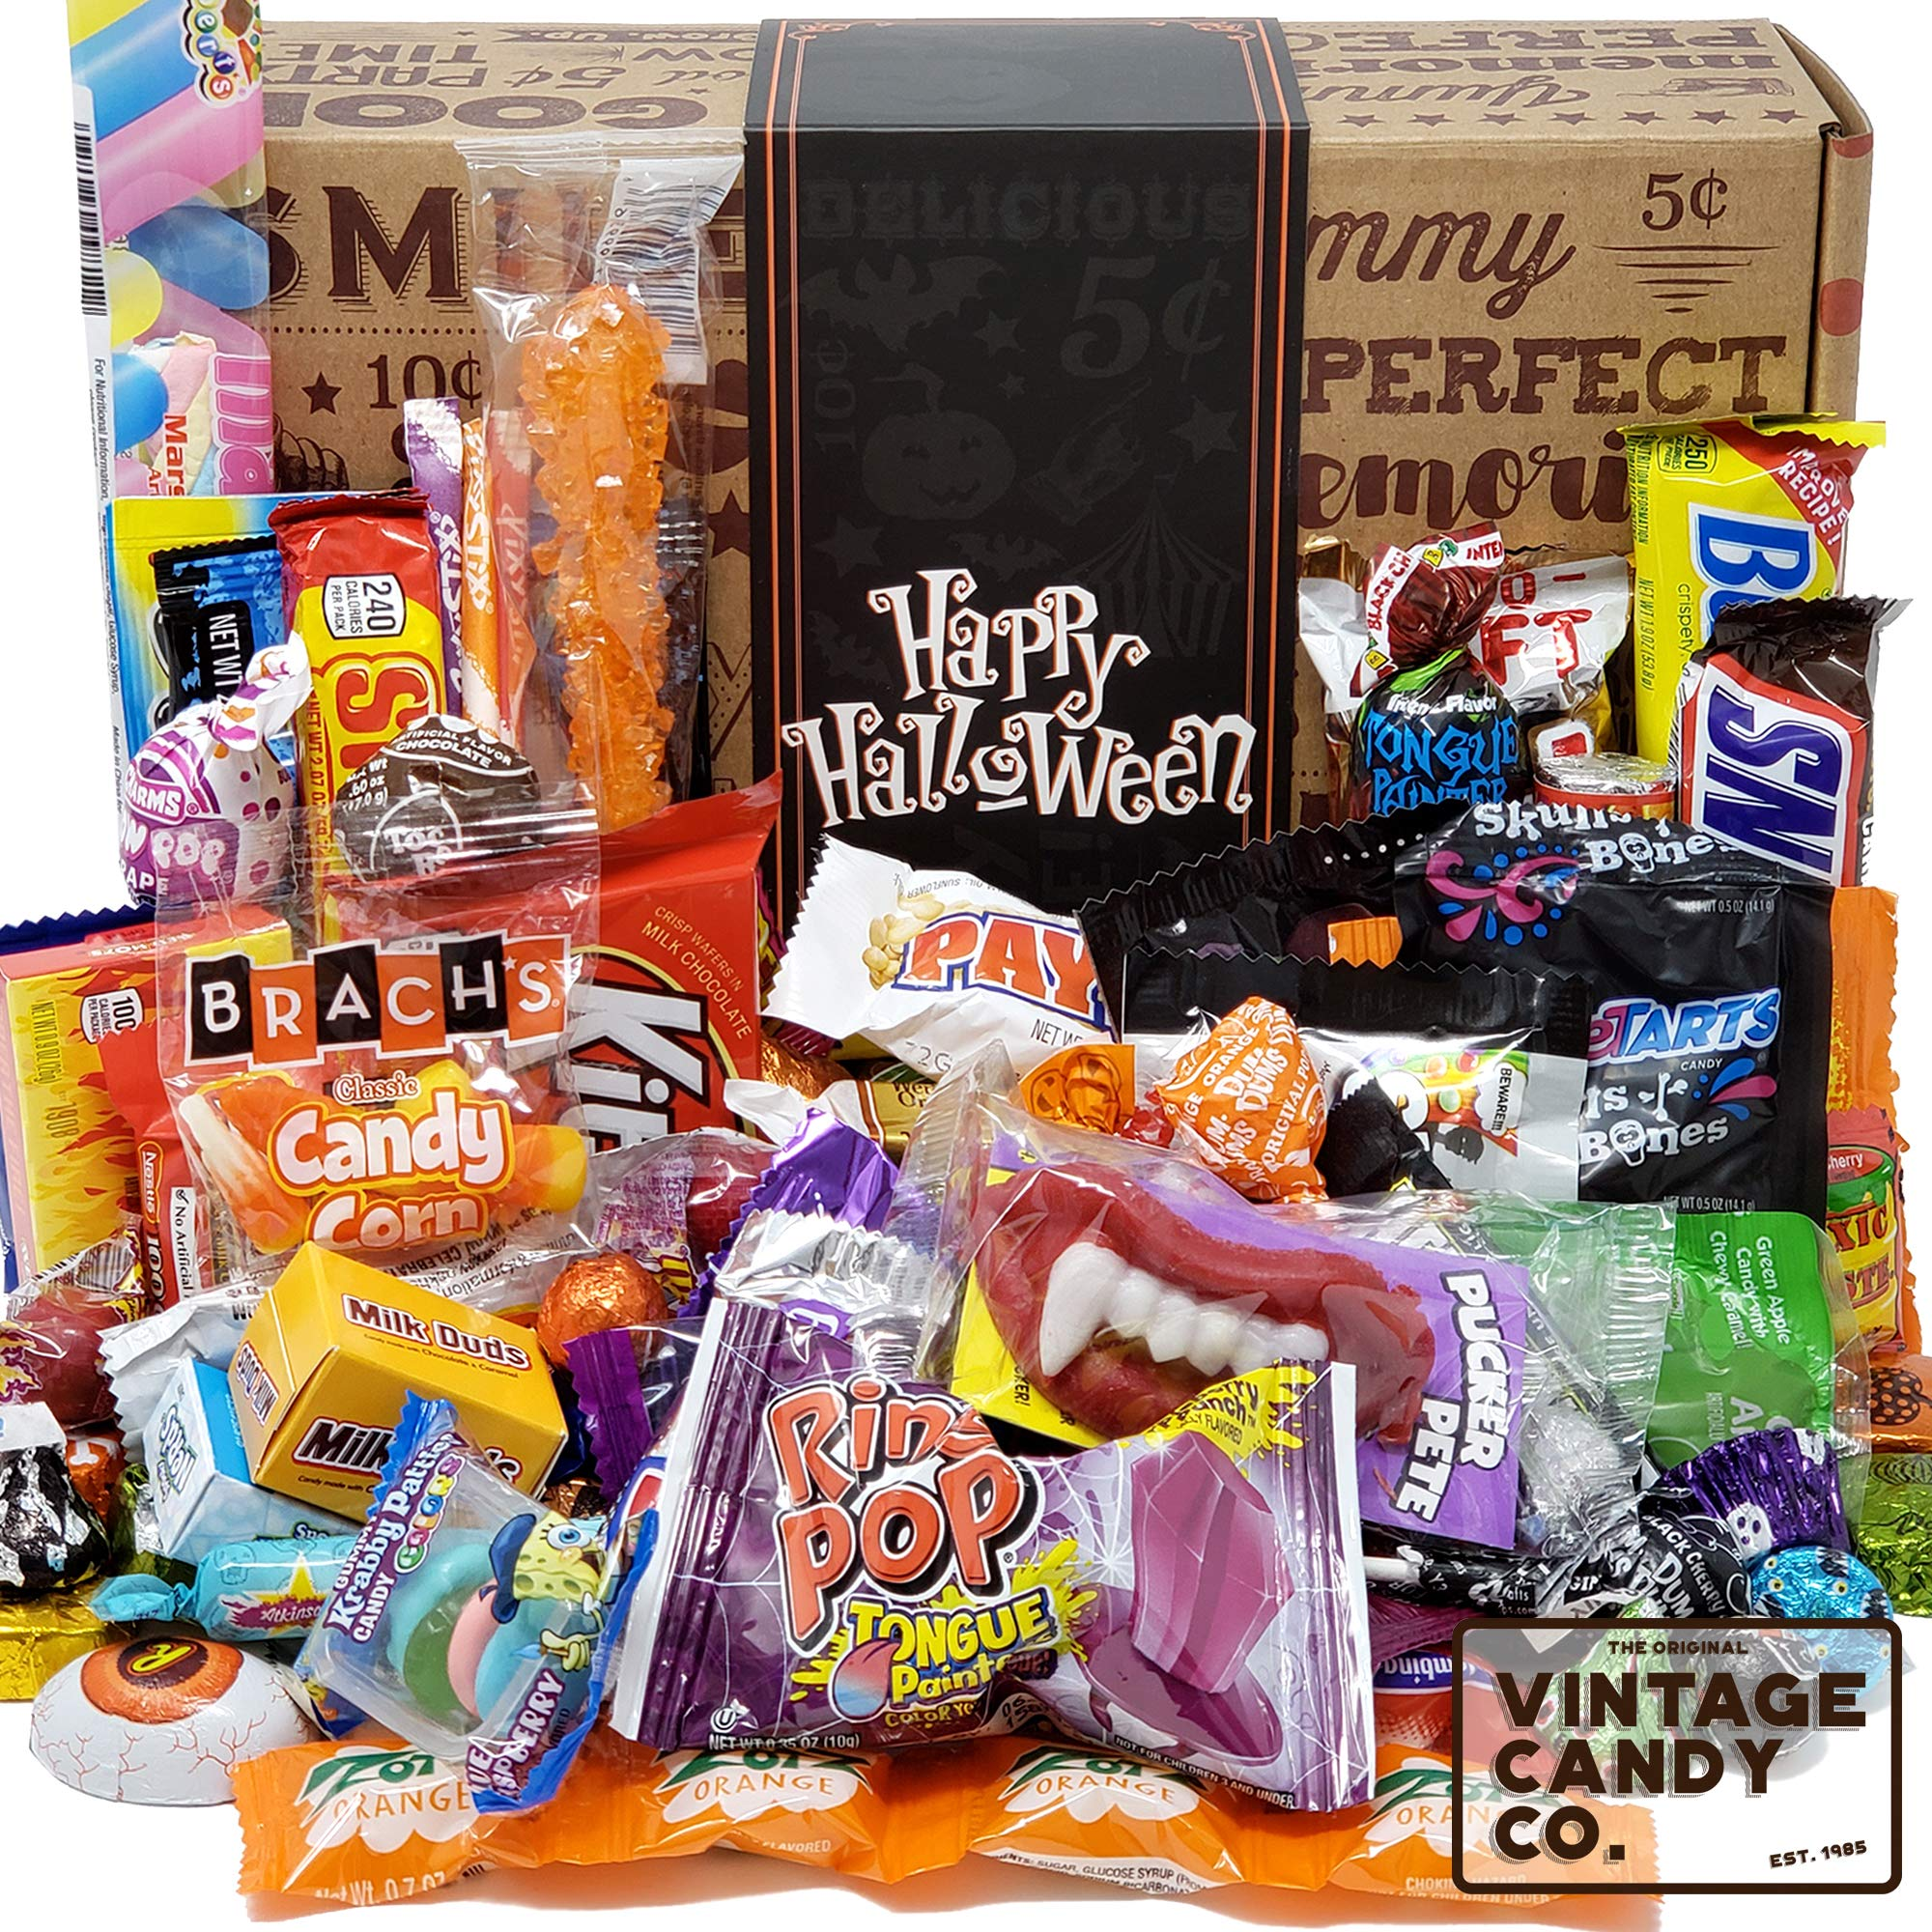 HALLOWEEN CANDY CARE PACKAGE LOADED GIFT ASSORTMENT Filled With Milk Chocolate Skulls, Eyeballs, Pumpkins, Seasonal Foil Candies, Candy Corn + More! PERFECT For Girls Boys Kids College Students Adults by Vintage Candy Co.